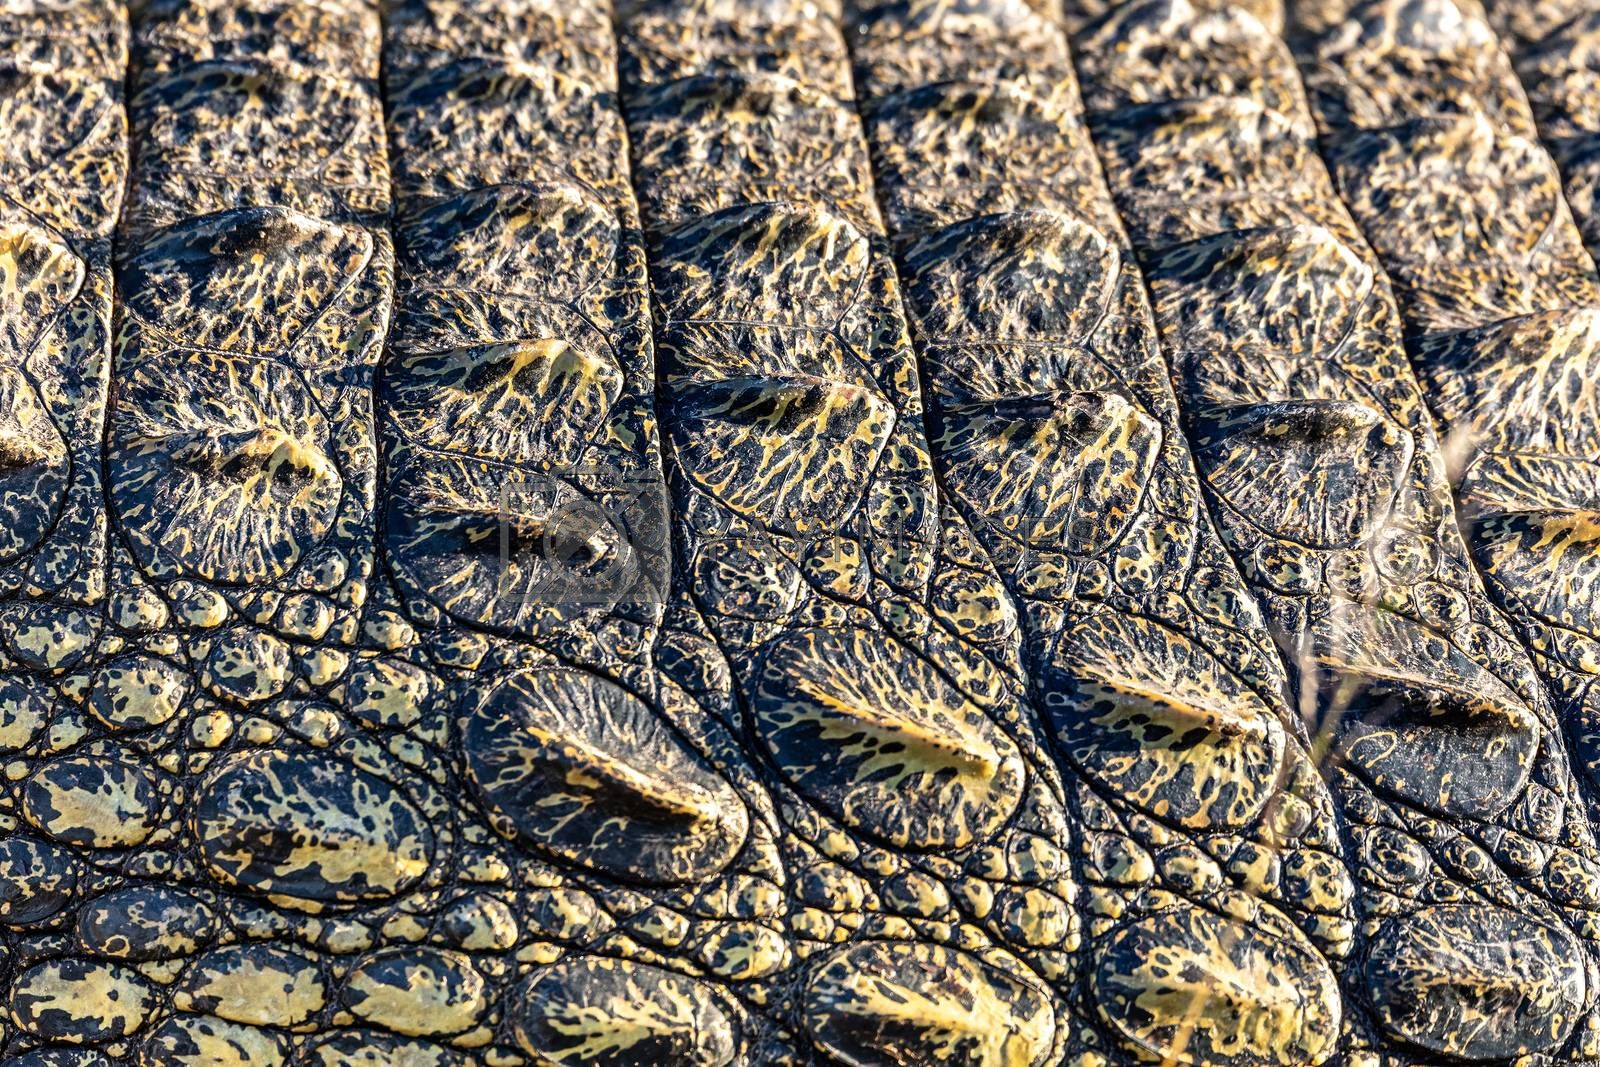 Detail of Nile crocodile skin for background of texture use